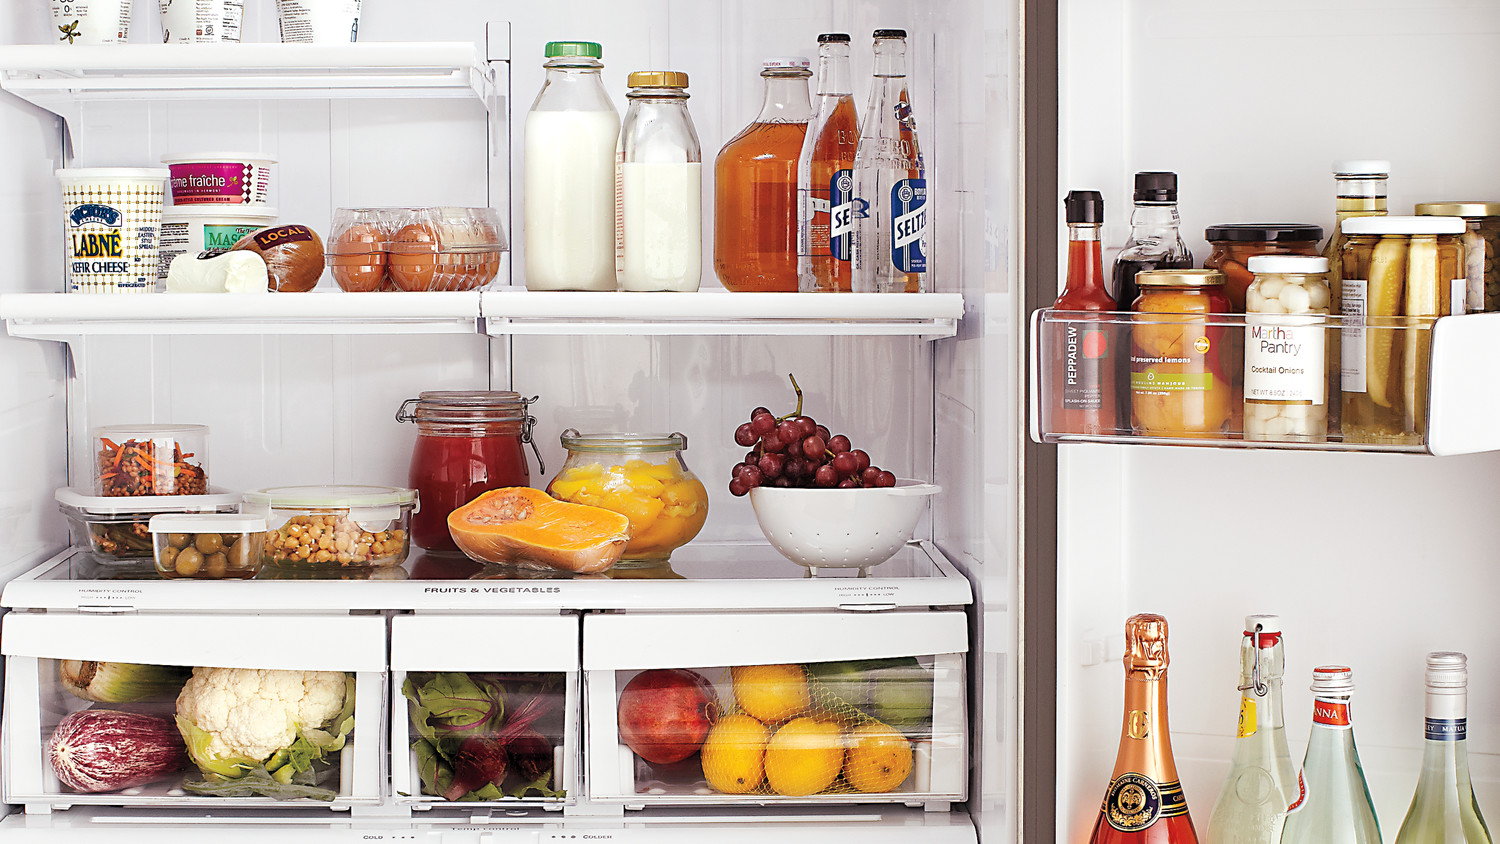 http://www.marthastewart.com/1508546/its-time-clean-out-your-refrigerator-holidays | marthastewart